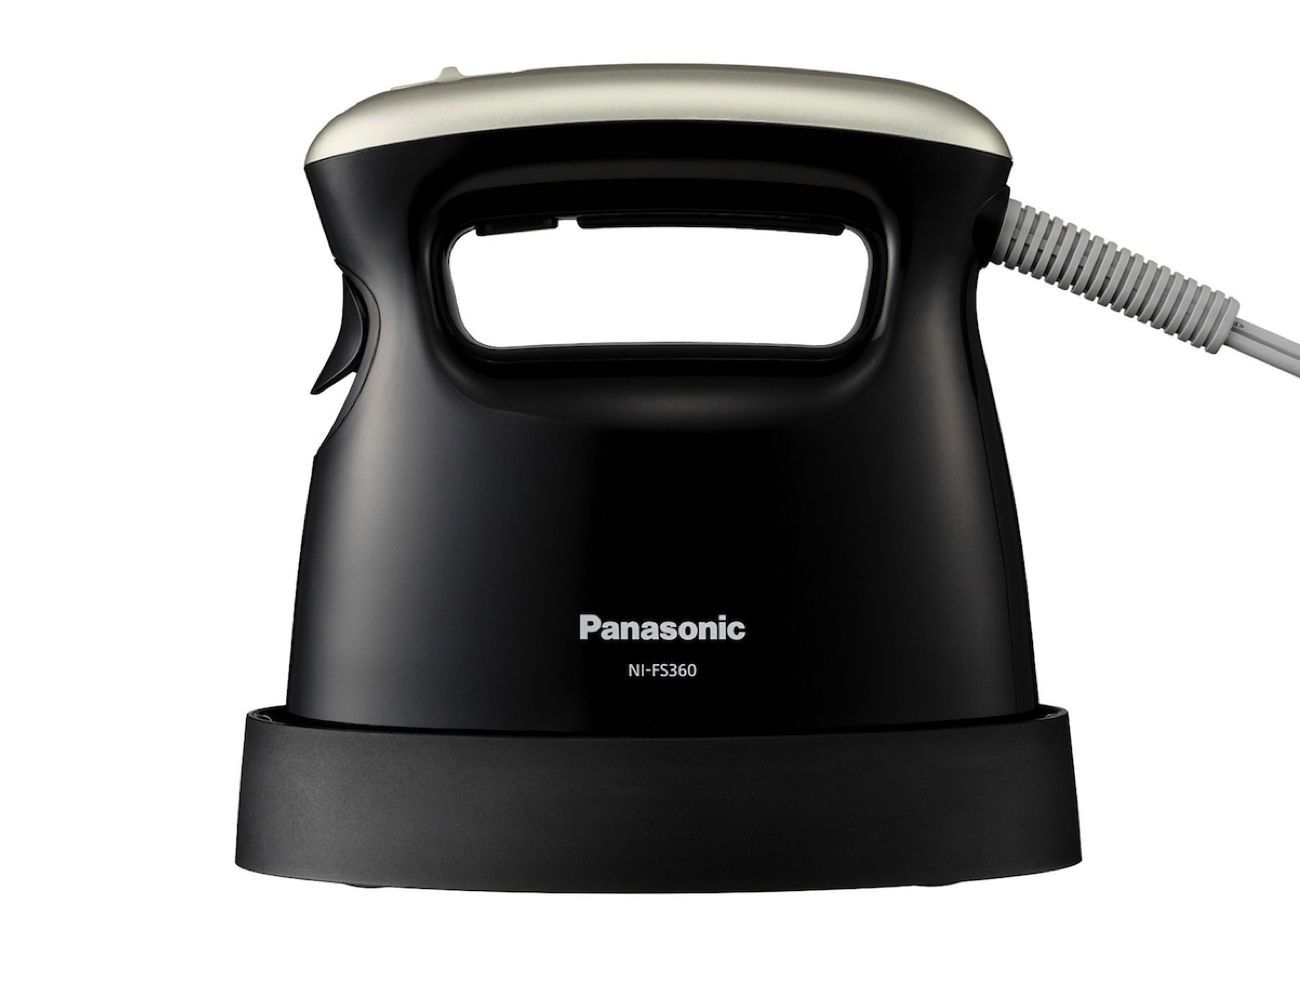 Panasonic Handheld Garment Steamer